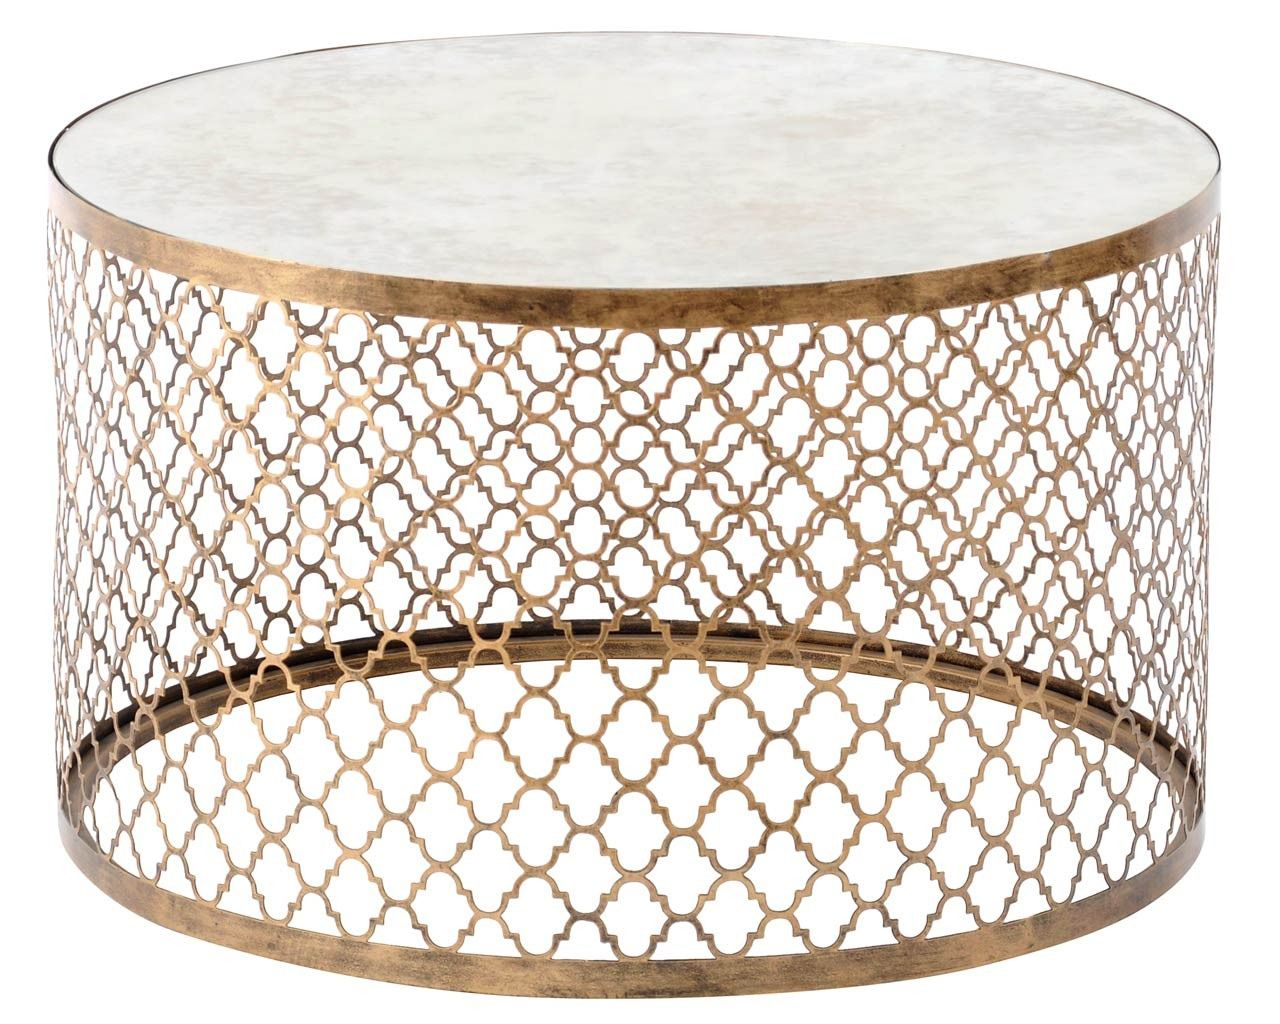 Round Moroccan Coffee Table Contemporary Living Room Furniture Sets Check More At Http Www Buzzfolders